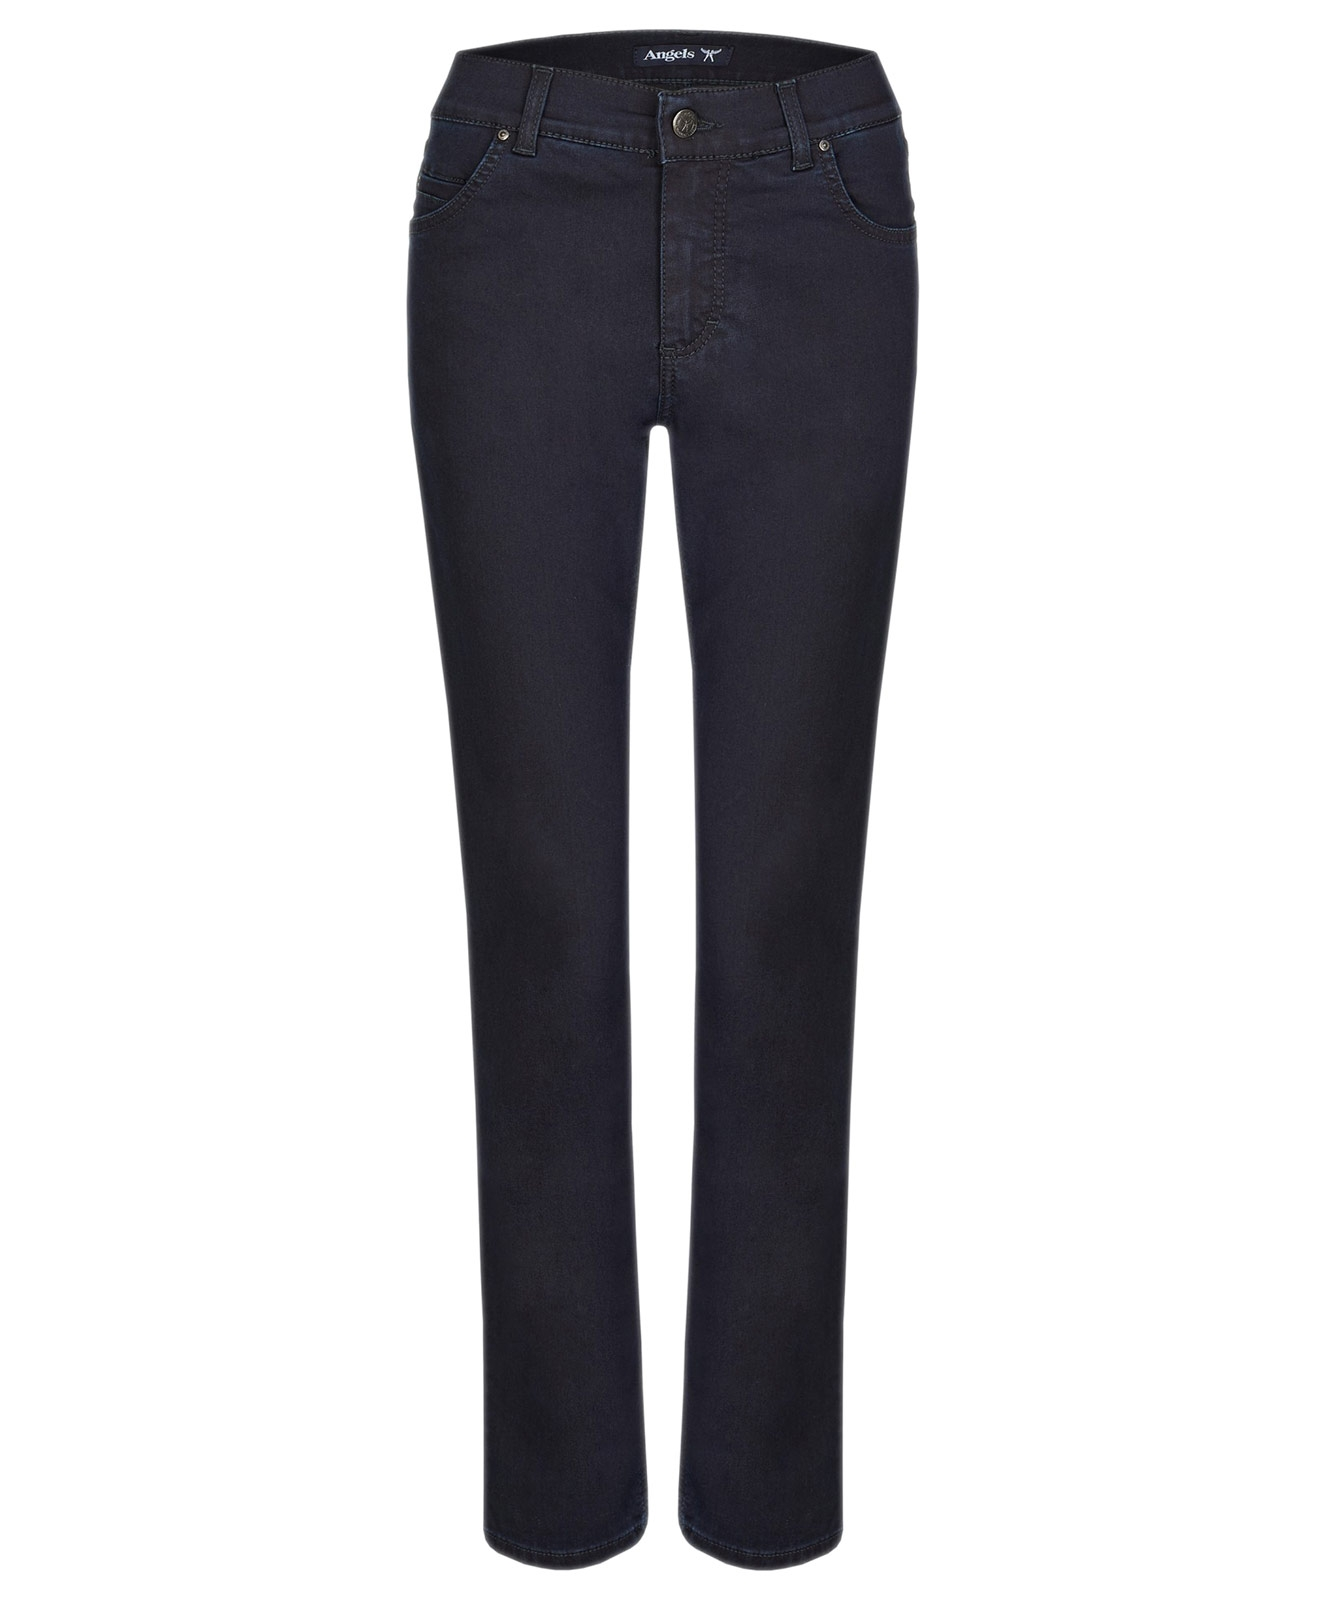 Hosen - Angels Straight Leg Jeans Cici in Night Blue  - Onlineshop Jeans Meile